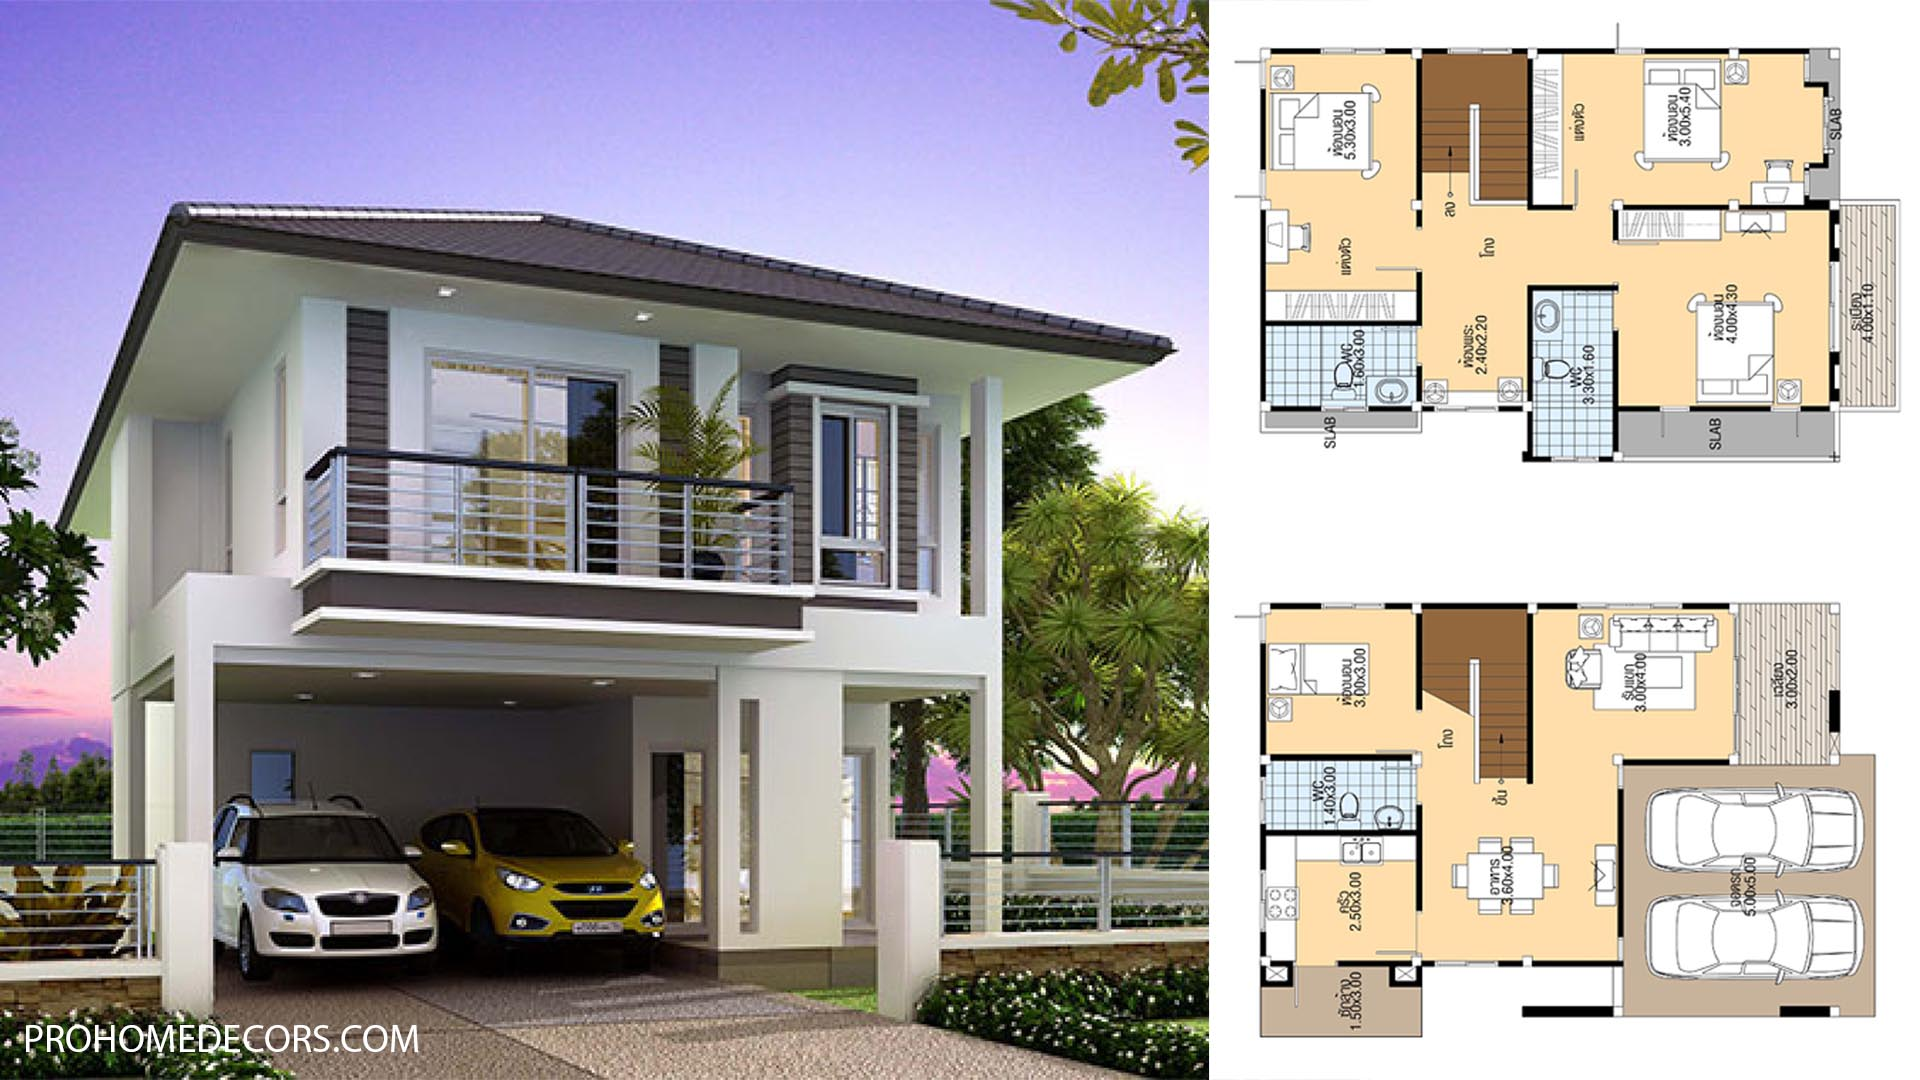 House Plans 8x12 with 4 Bedrooms